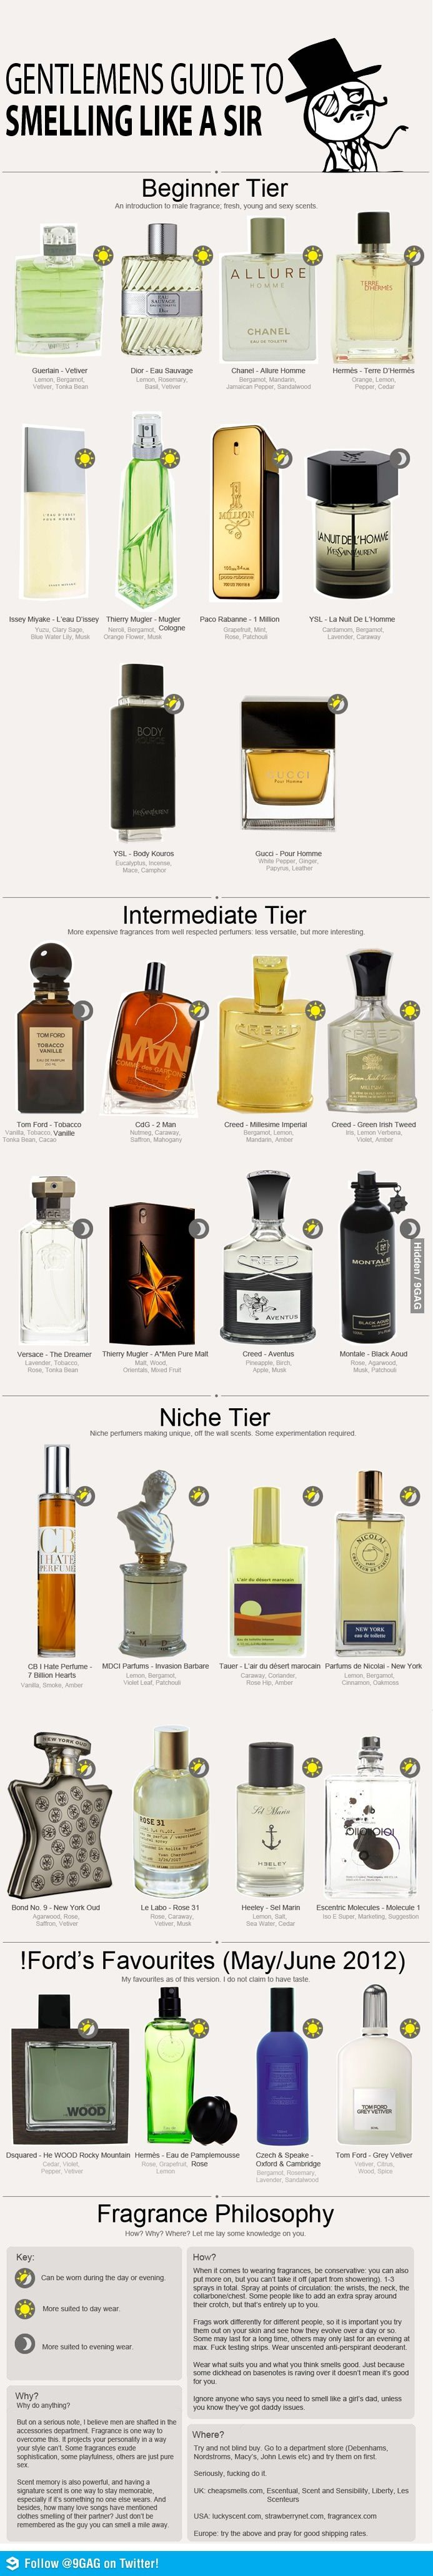 Gentleman's guide to smelling like a sir